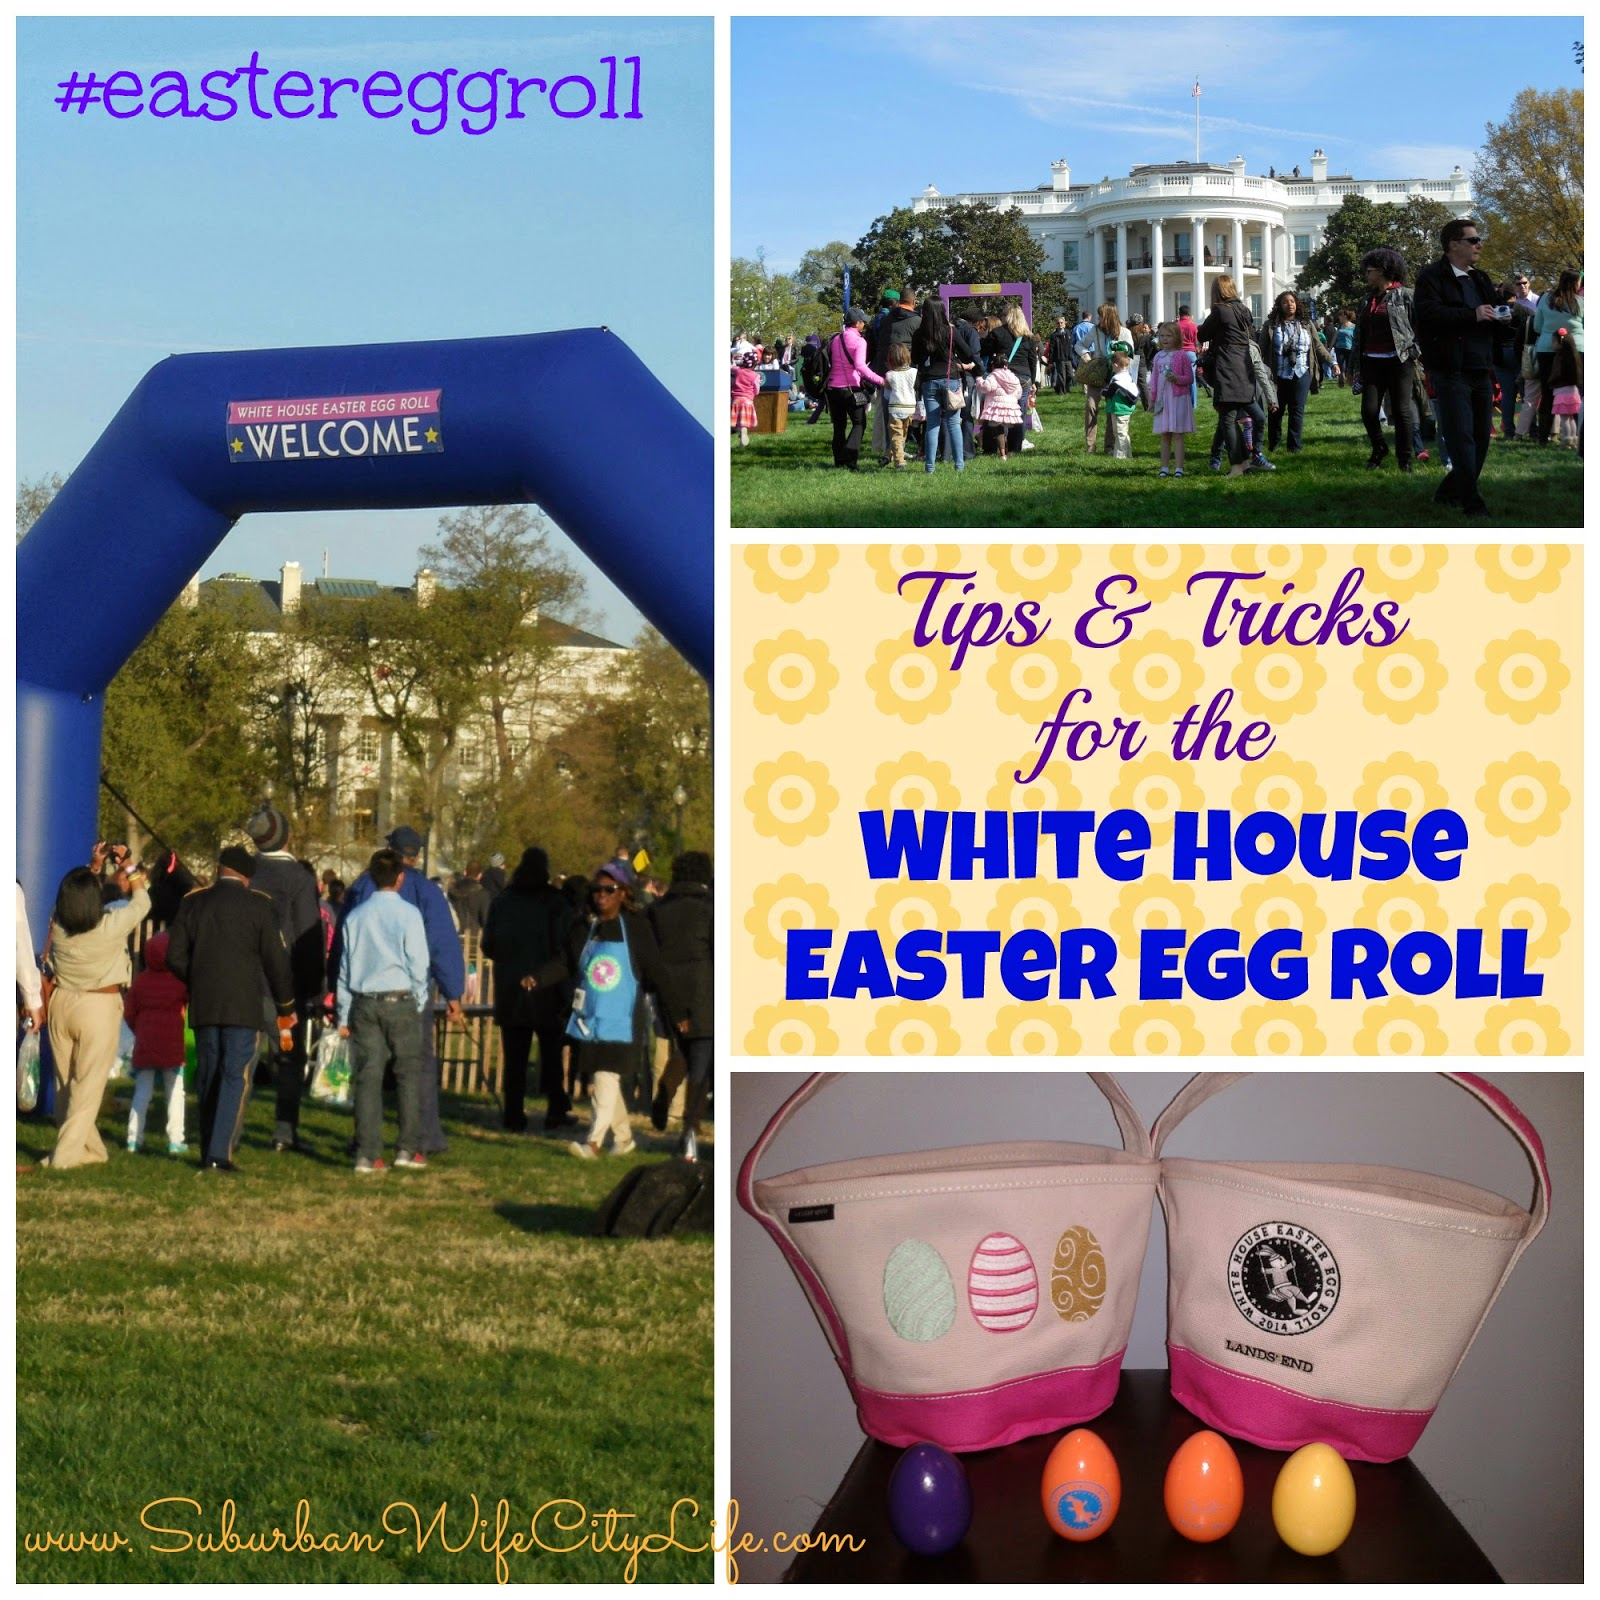 Tips & Tricks for the White House Easter Egg Roll #eastereggroll